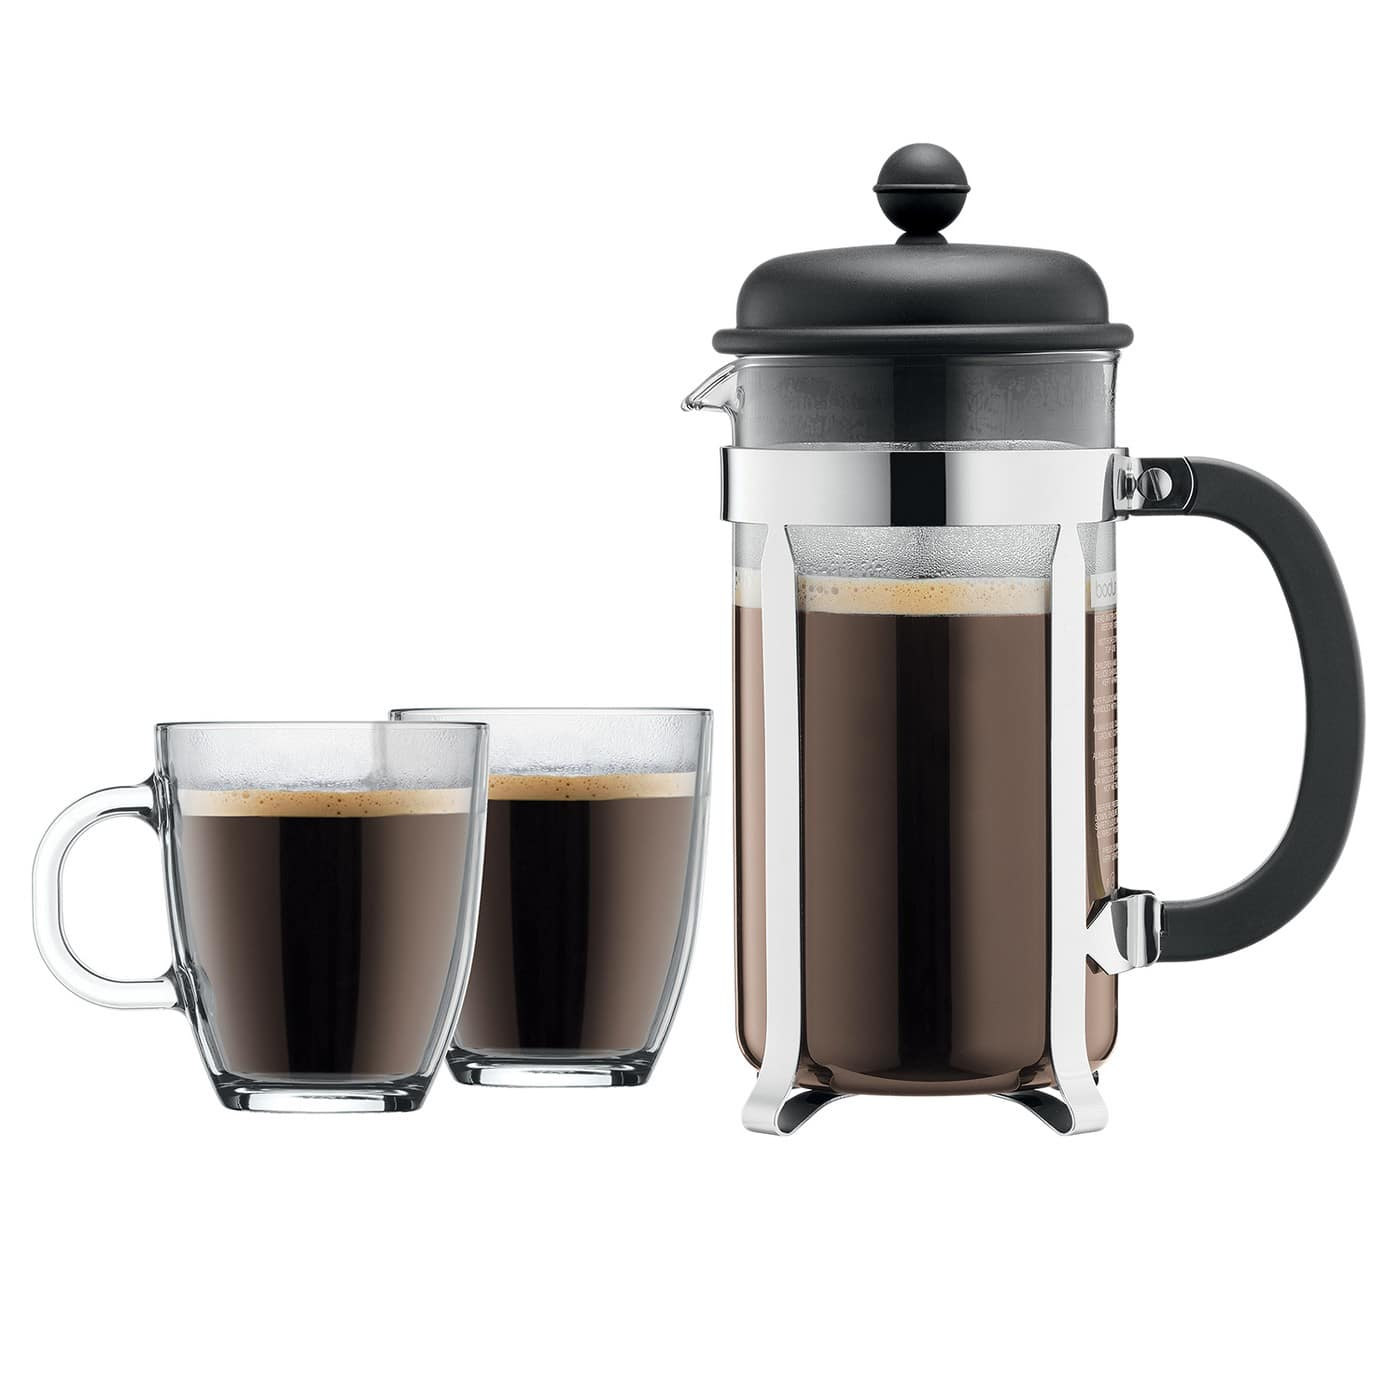 Bodum Brazil 8 Cup French Press with Two Mugs - $14.99